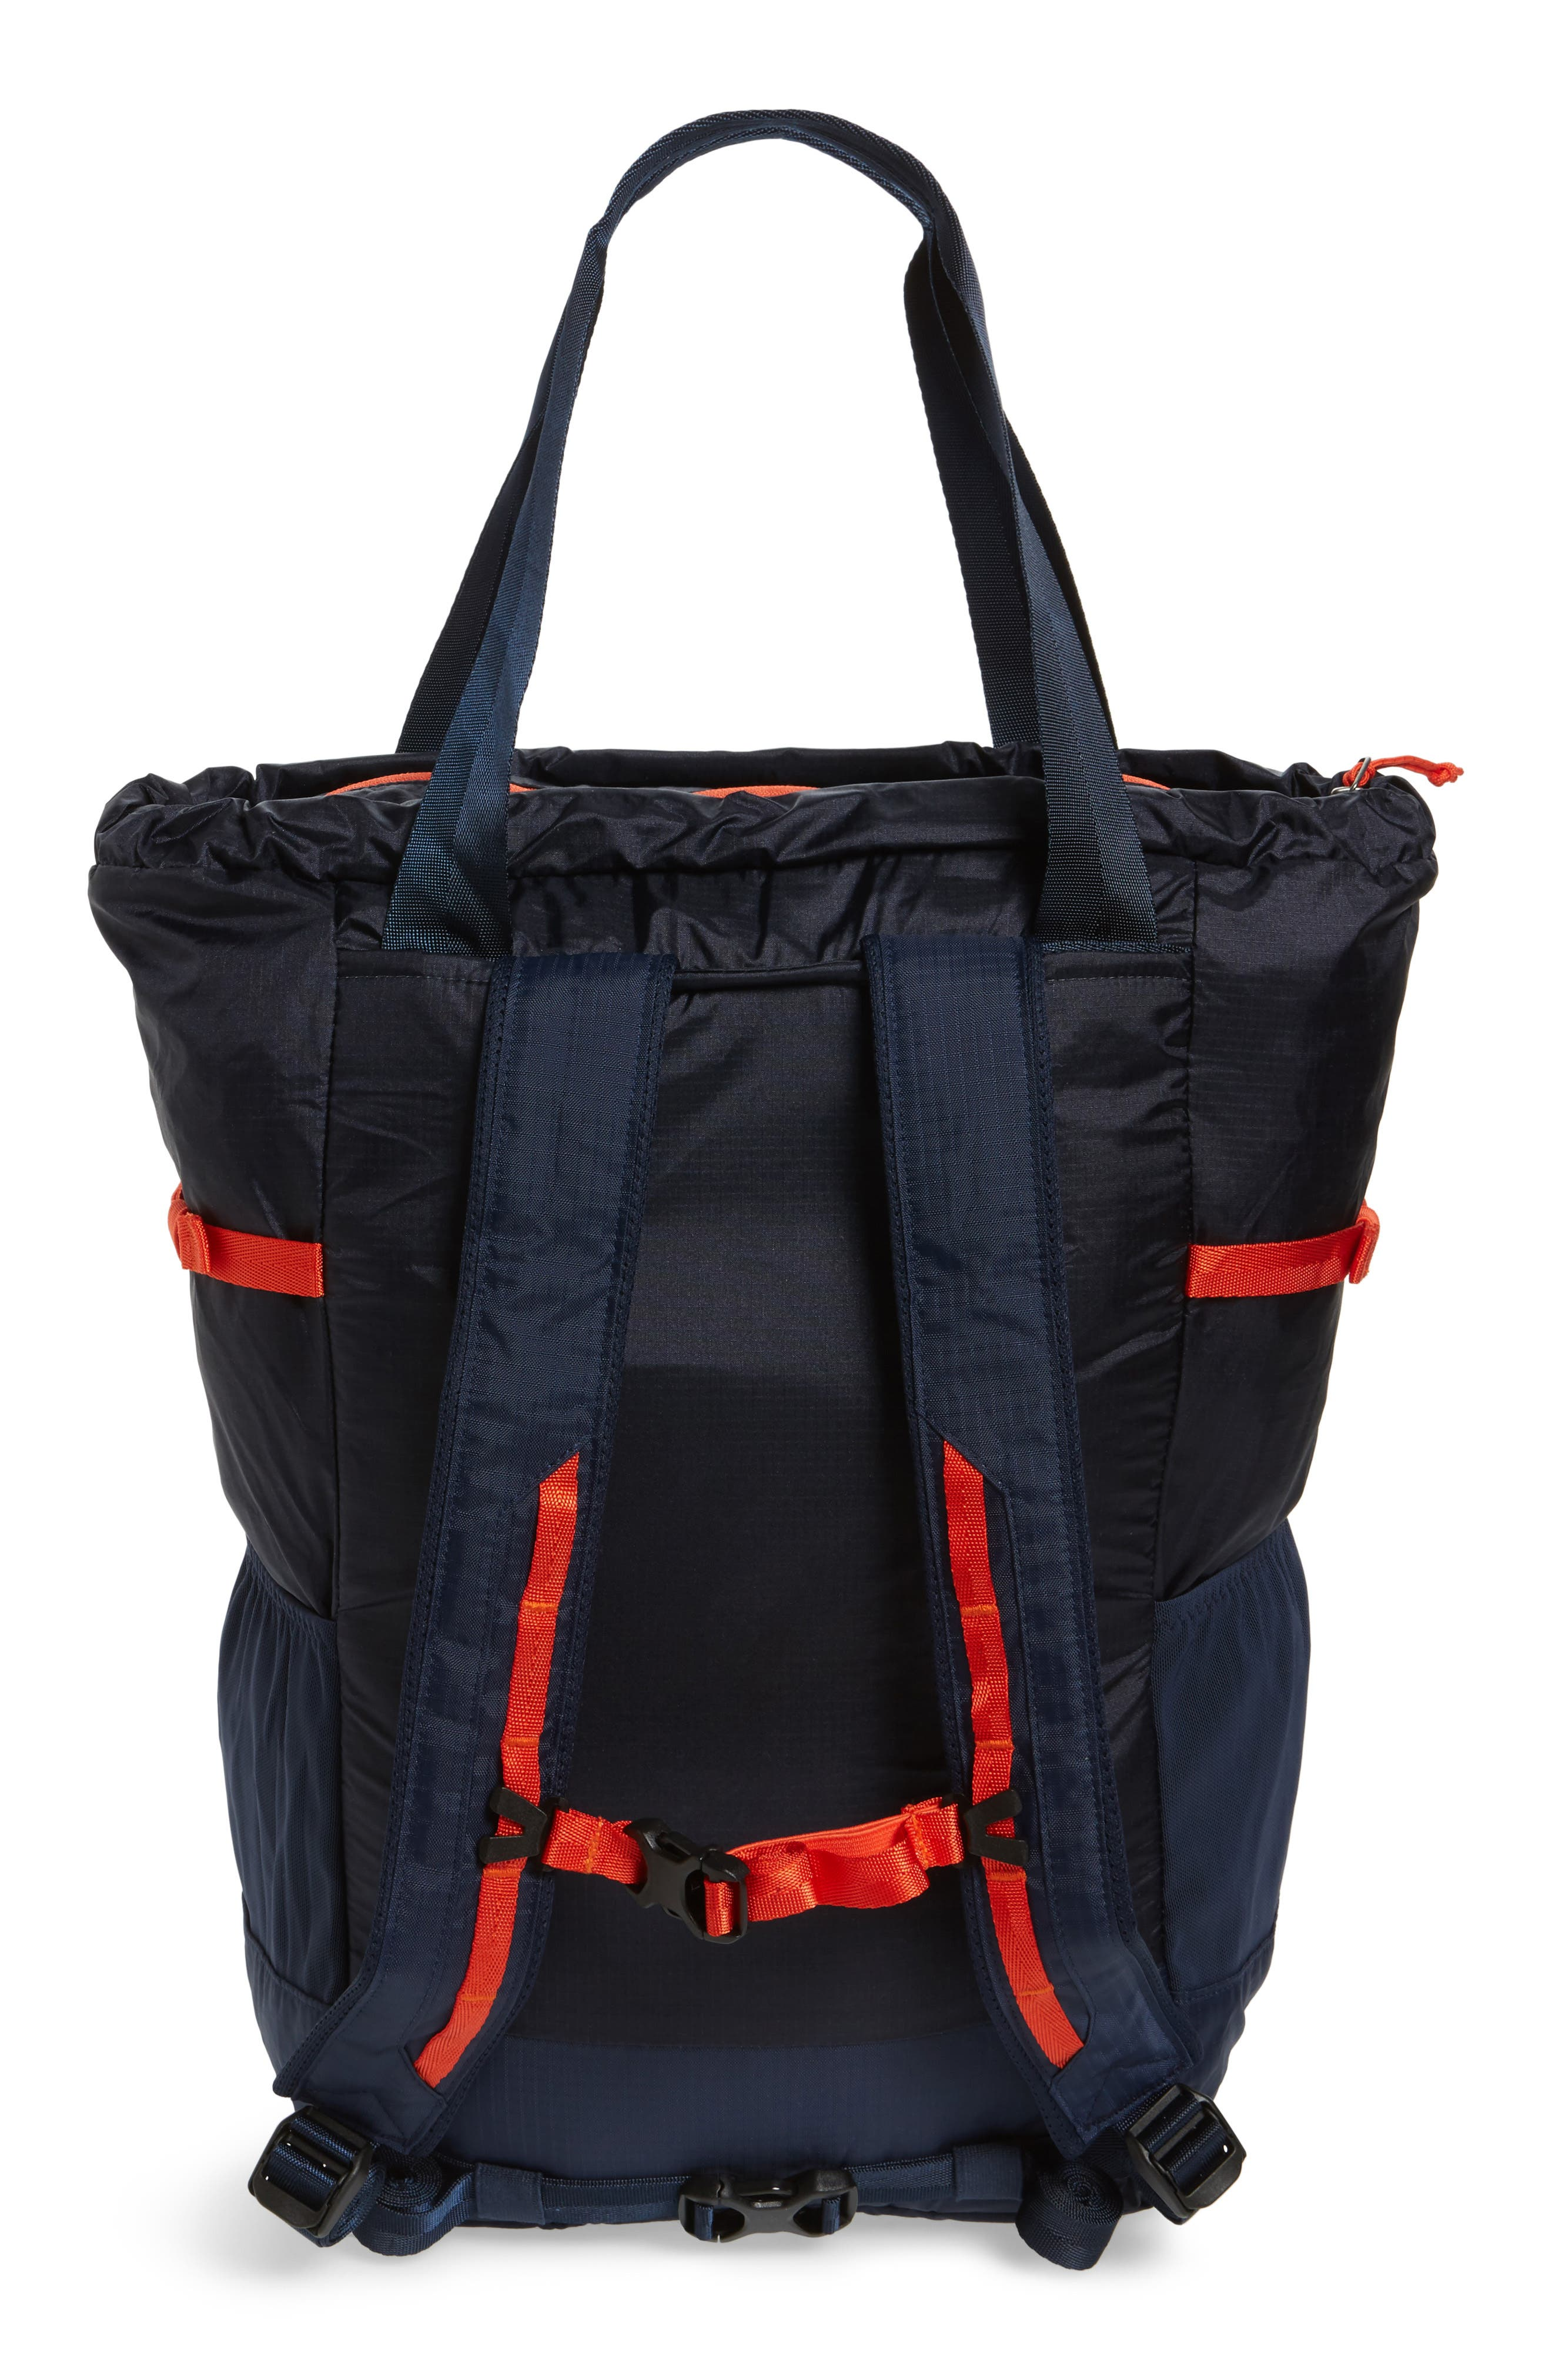 Lightweight Travel Tote Pack,                             Alternate thumbnail 3, color,                             403